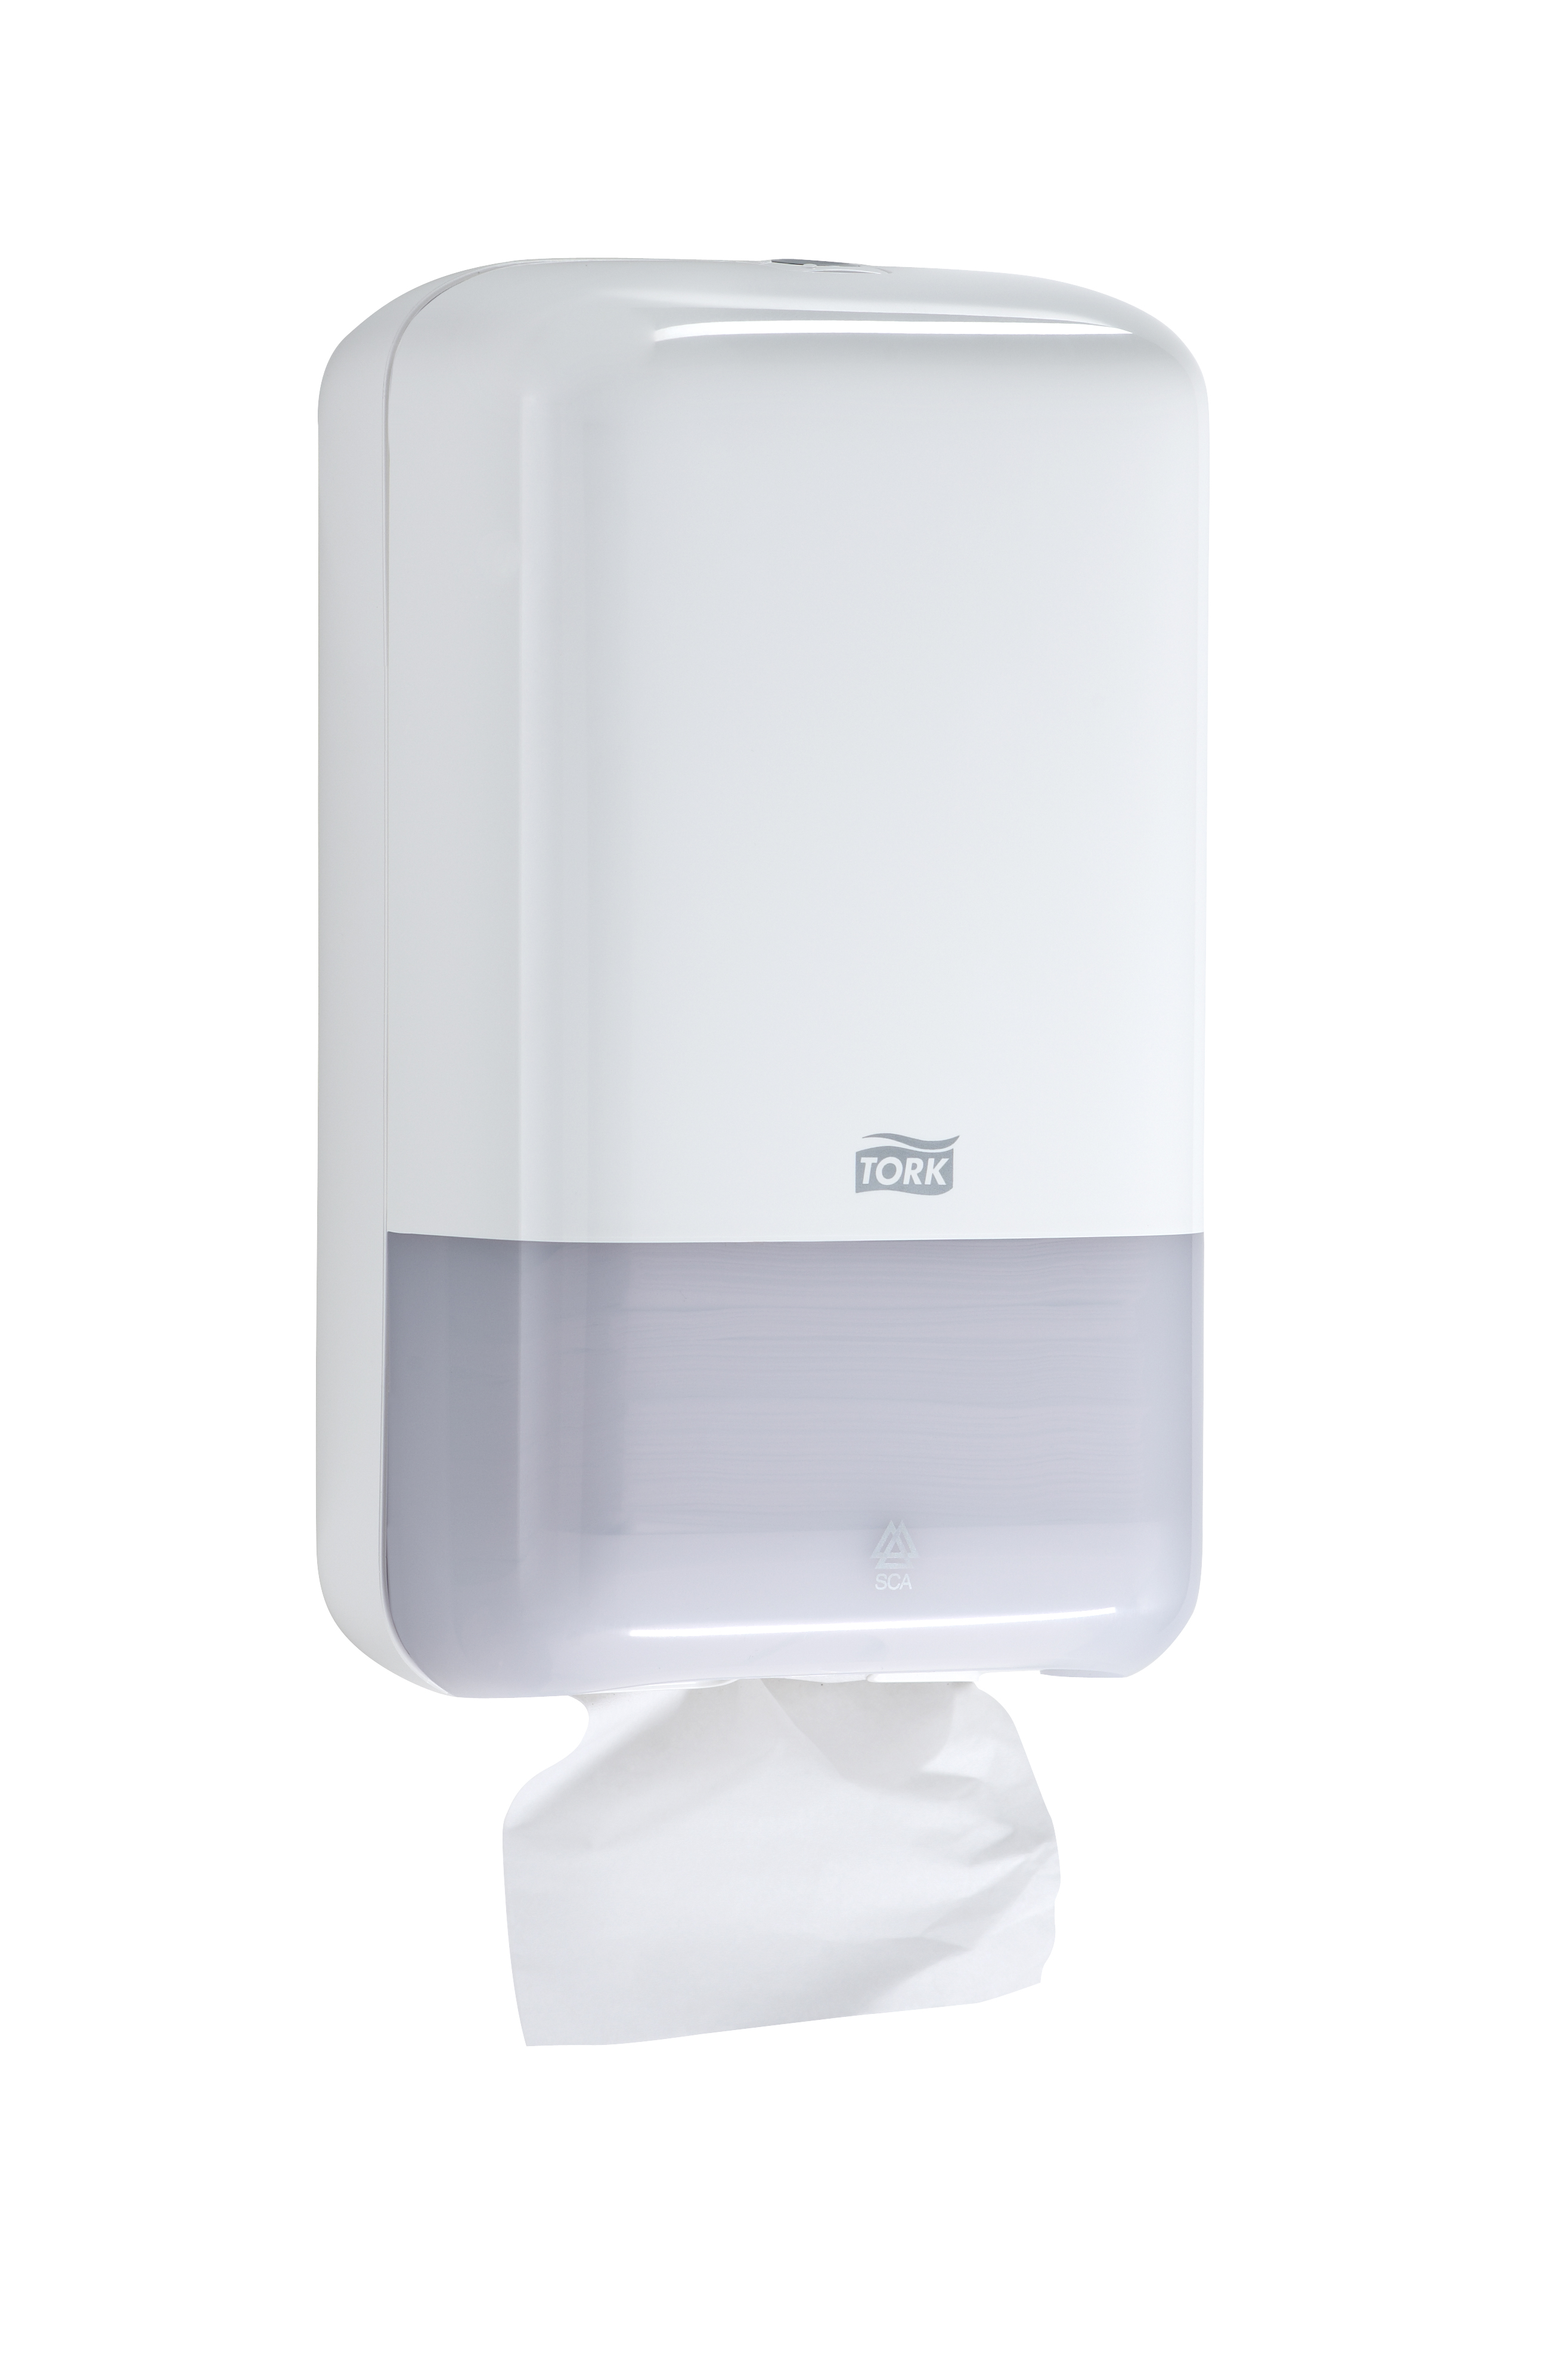 10073286623734 556020-Tork Elevation Folded Bath Tissue Dispenser, White